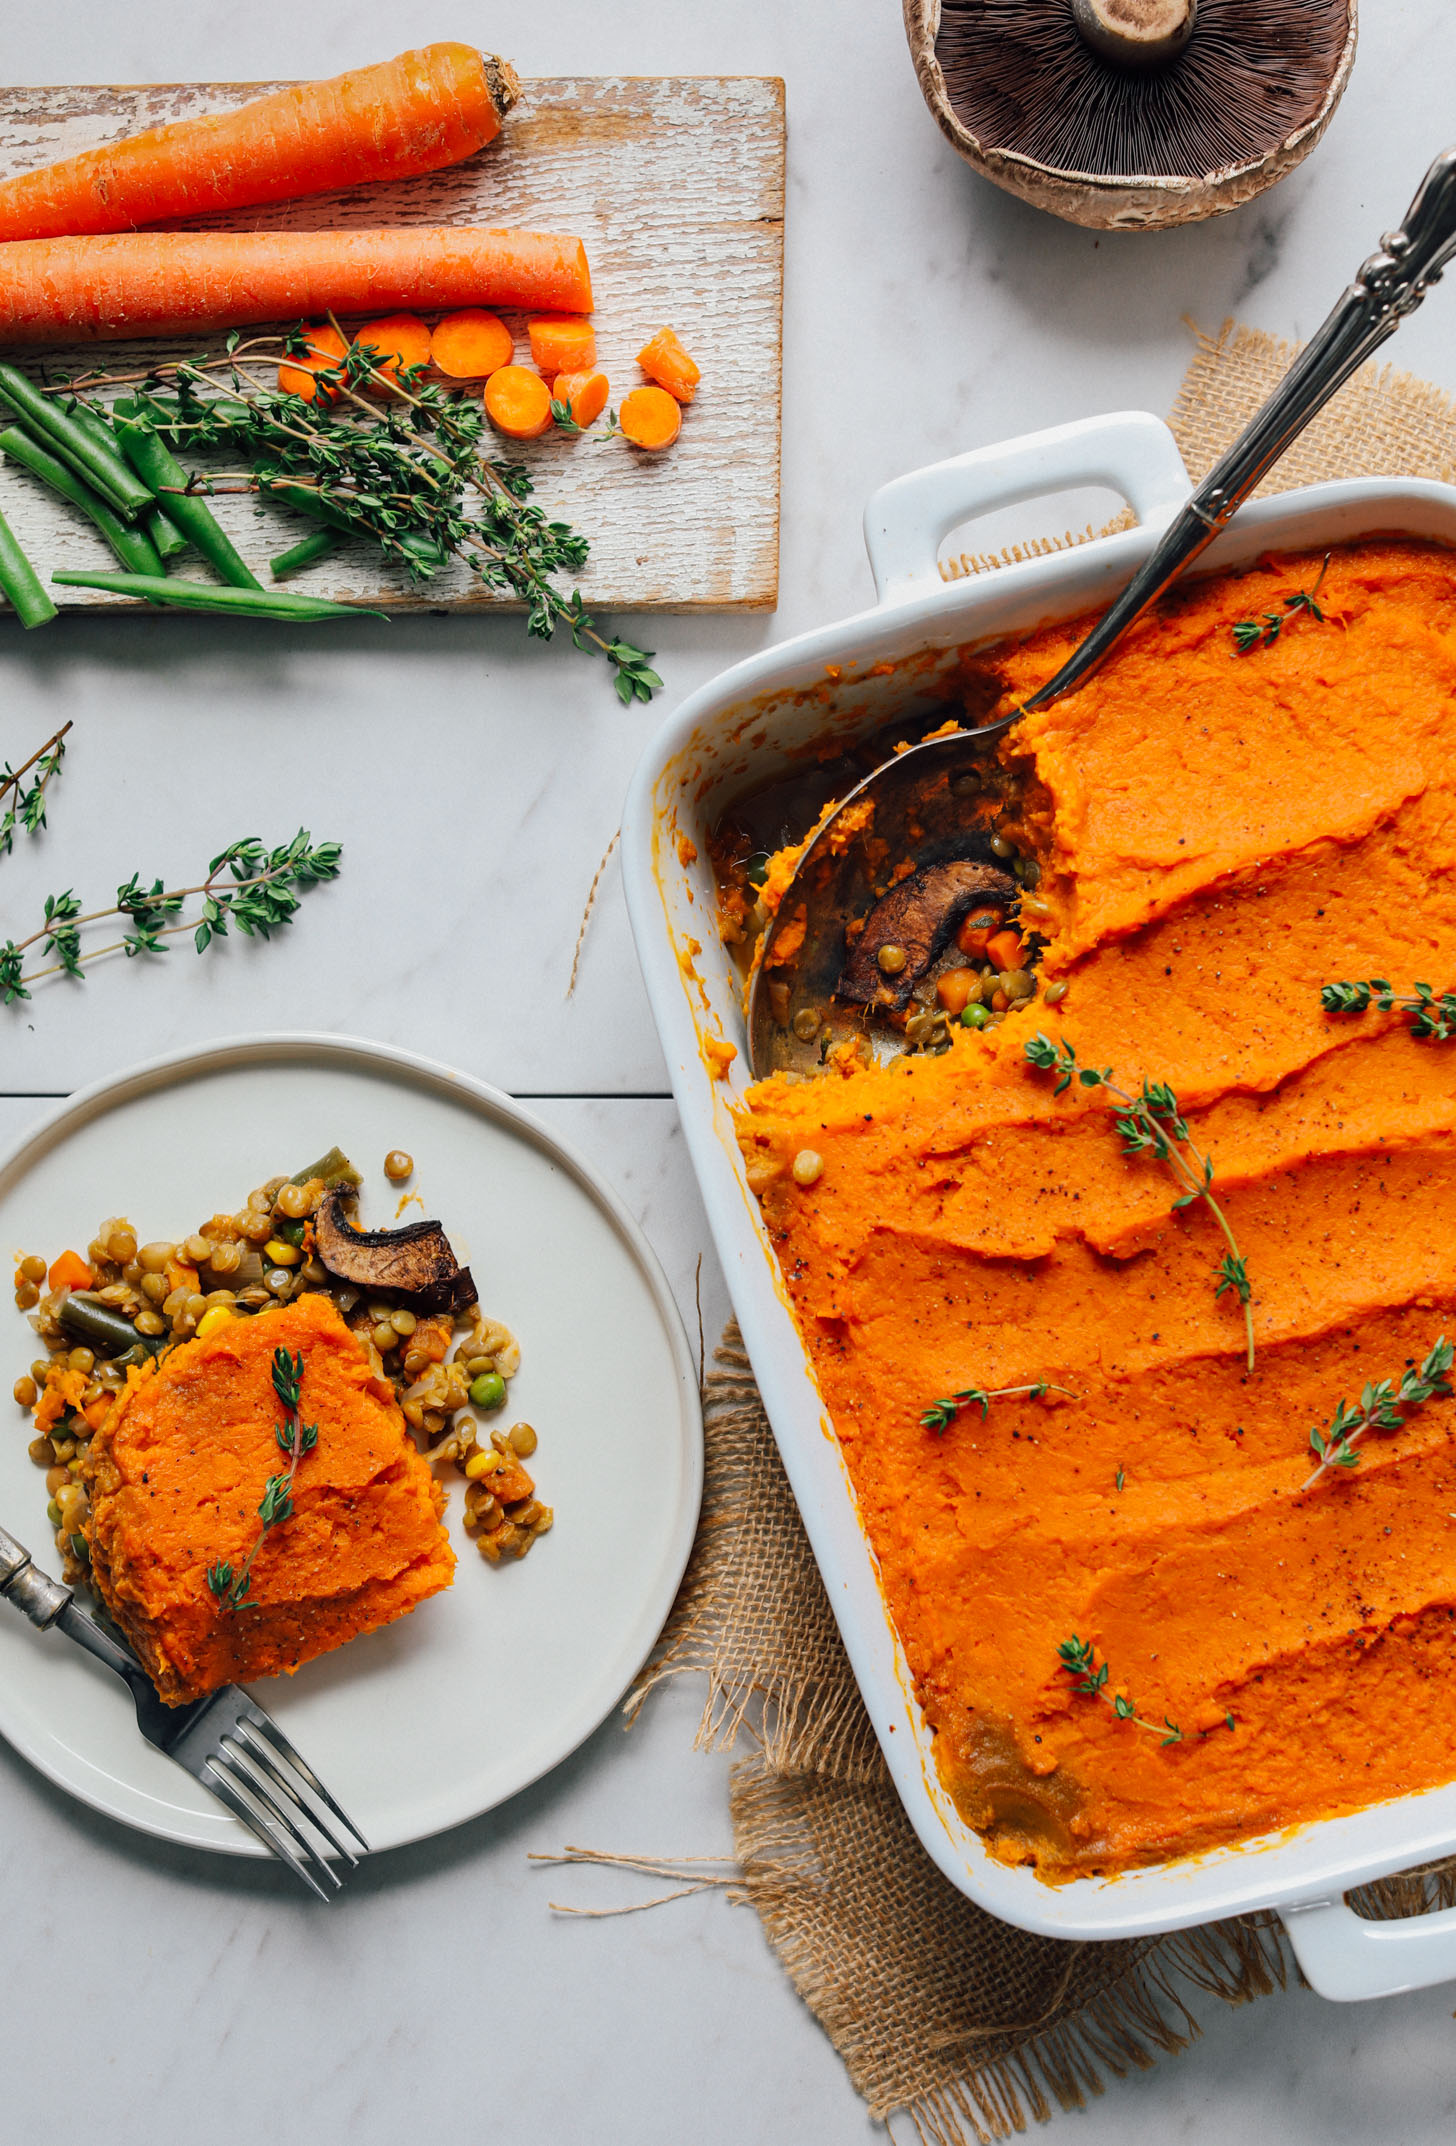 Grabbing a hearty serving of Sweet Potato Lentil Shepherd's Pie for the Thanksgiving festivities